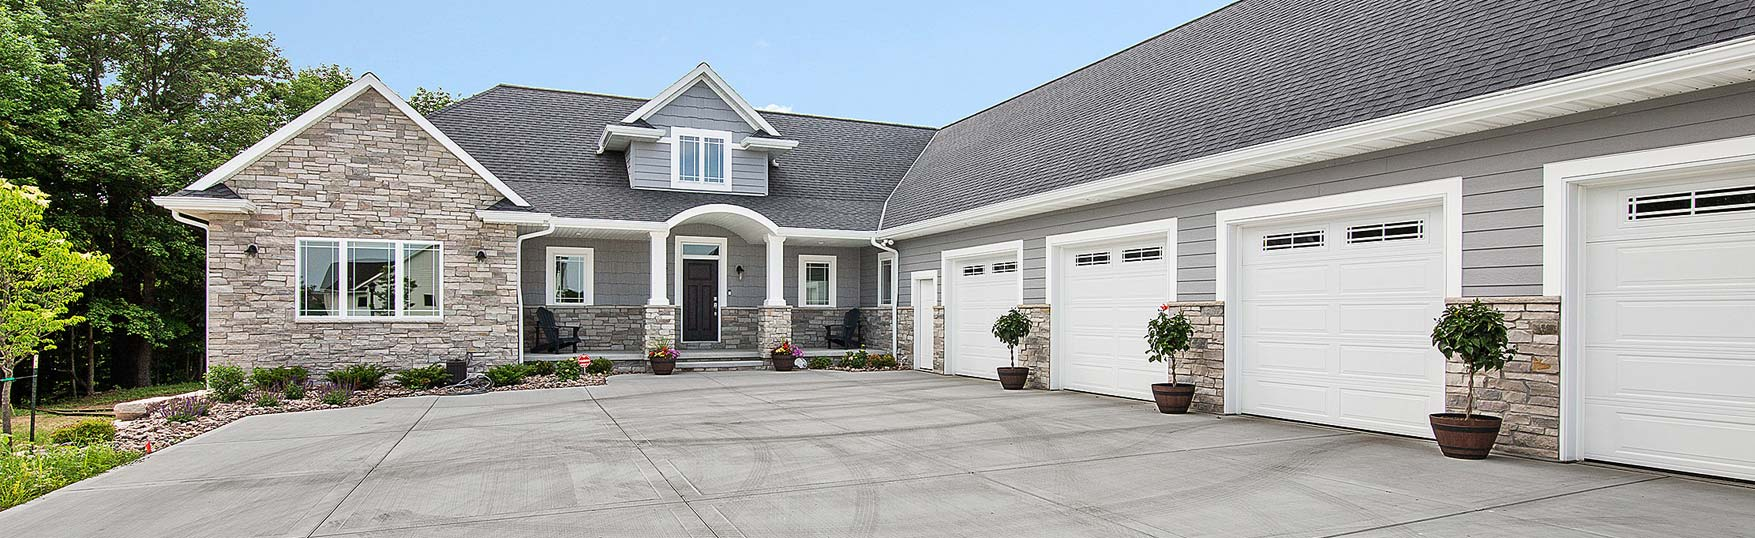 Thompson Homes, Inc. reviews   Home Builder at 2652 N Packerland Dr - Green Bay WI